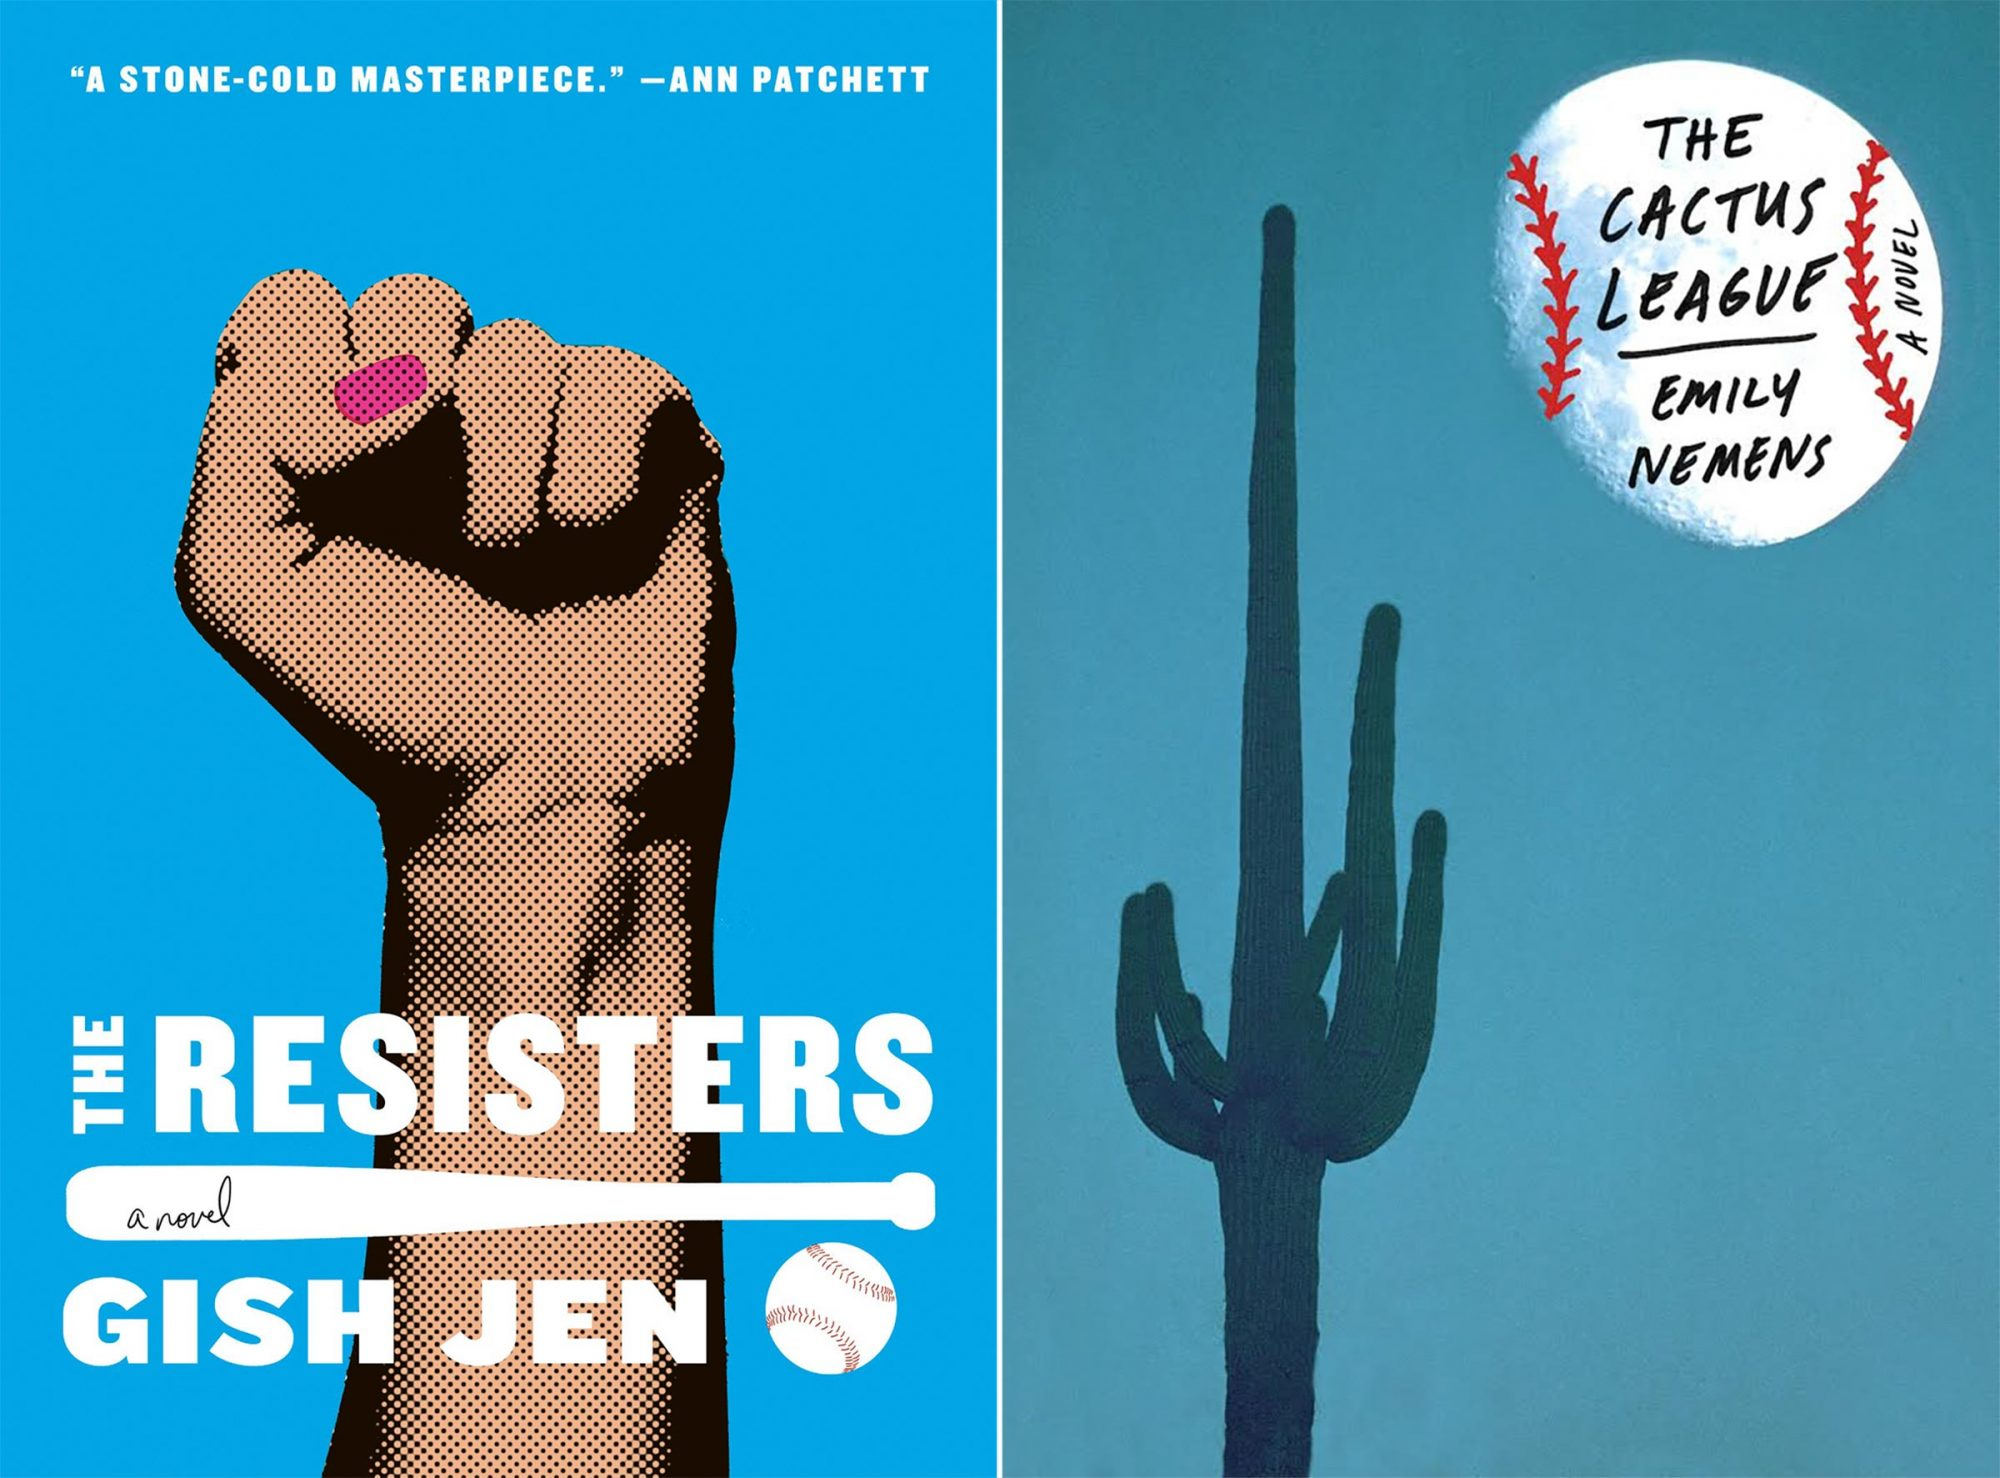 The Resisters by Gish Jen The Cactus League by Emily Nemens